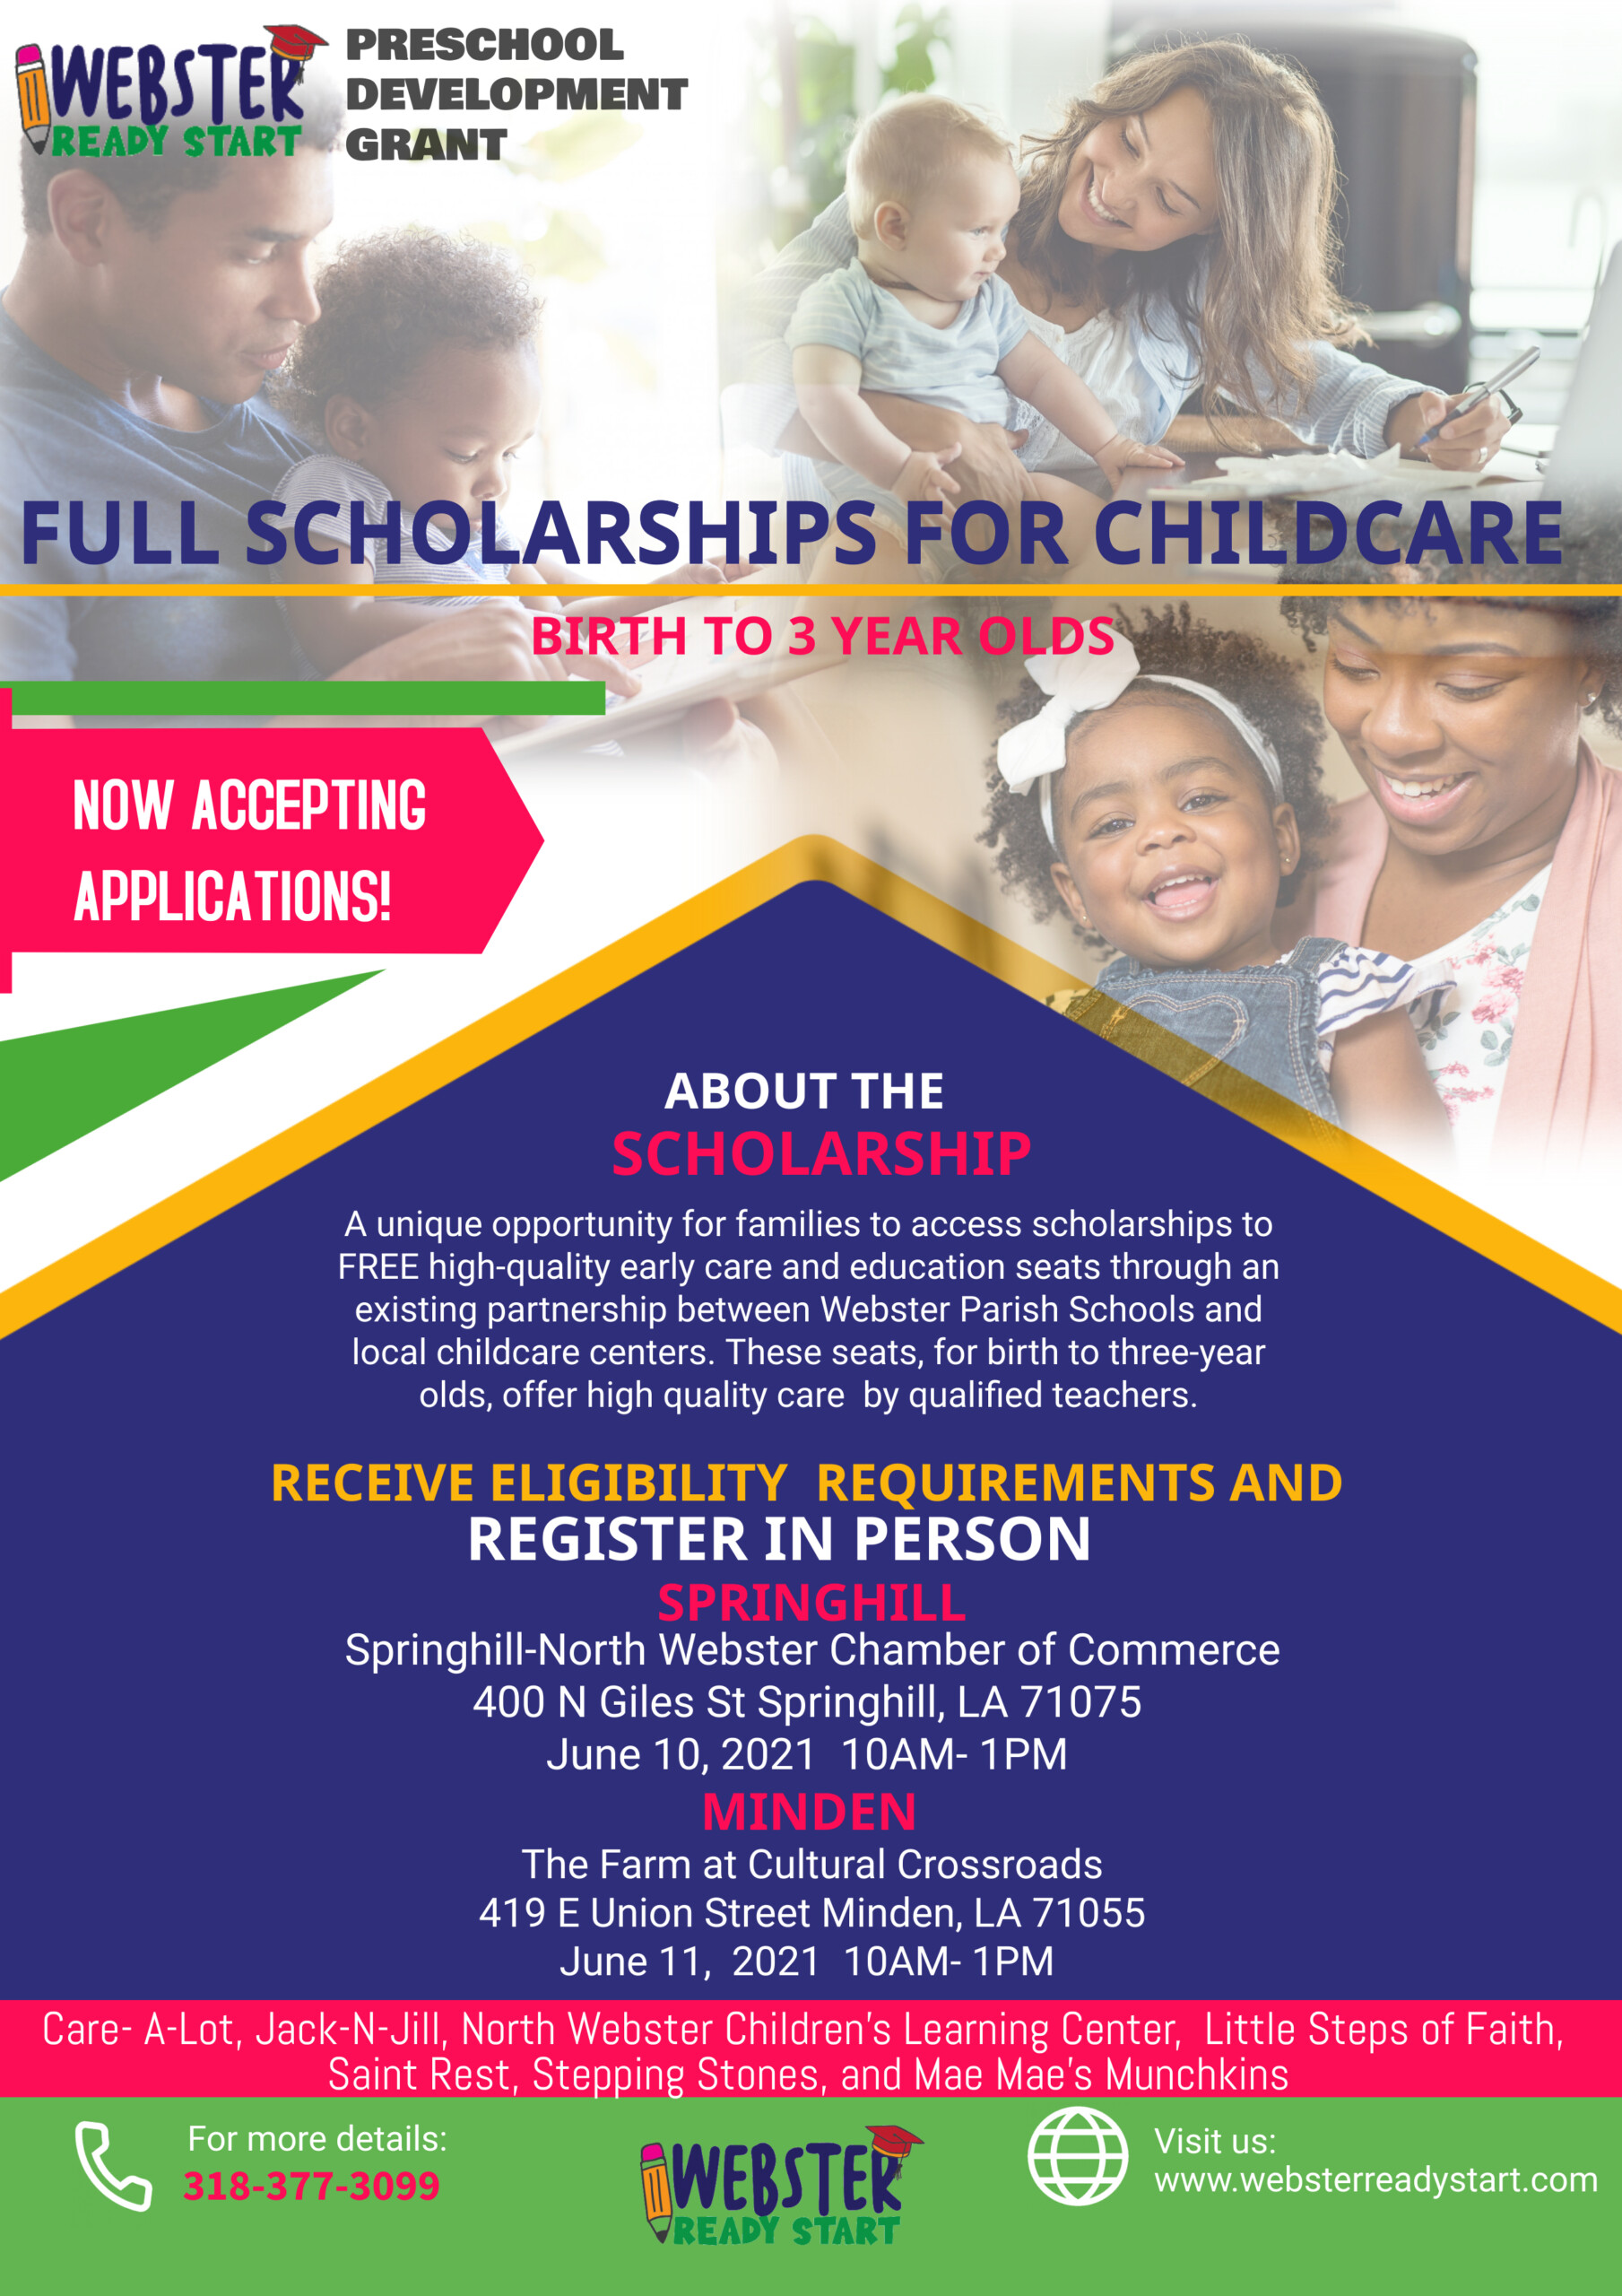 FULL SCHOLARSHIPS FOR CHILDCARE (Birth- 3 year olds) Receive eligibility requirements and register: June 10- Springhill- North Webster Chamber of Commerce 10am-1pm June 11- The Farm at Cultural Crossroads 10am-1pm Documents Required: •Child's birth certificate •Child's shot record •Proof of Residency •Parent/Guardian's Photo ID •Custodial documentation (if applies) •Unearned Income documents (if applies- unemployment, retirement, alimony, child support, veteran's benefits, SSI) and any of these that apply Working Eligibility: 2 current sequential pay statements (if applies) OR School/Training Eligibility: official transcript or detailed schedule from accredited school OR Actively Seeking Employment: HIRE account registration